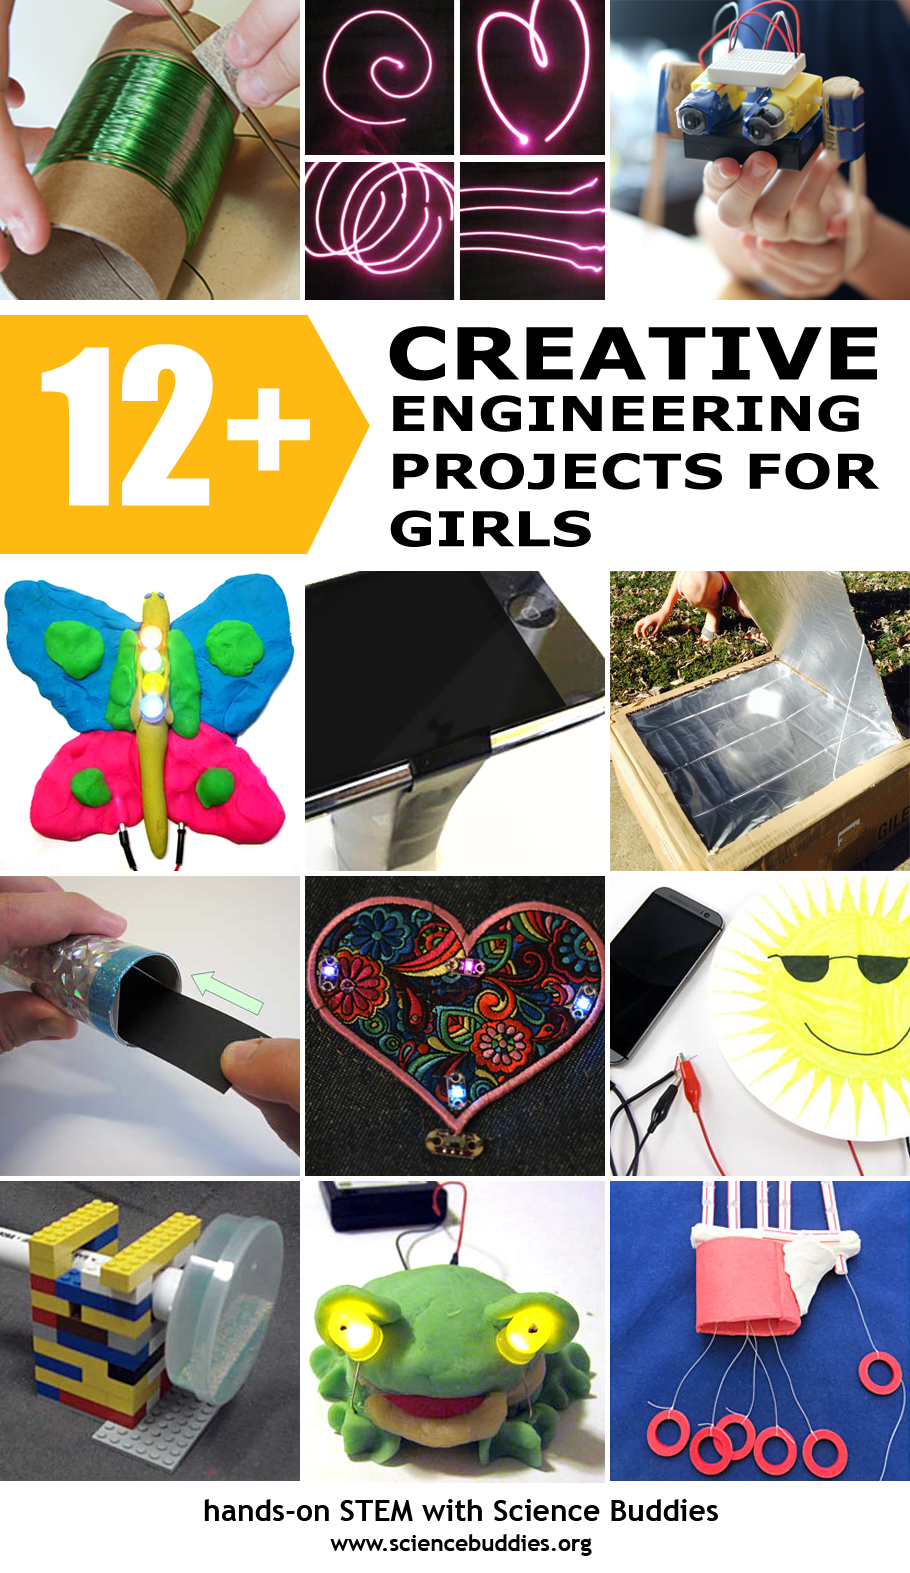 Eweek Girls Day / Engineering Projects to Celebrate Girls